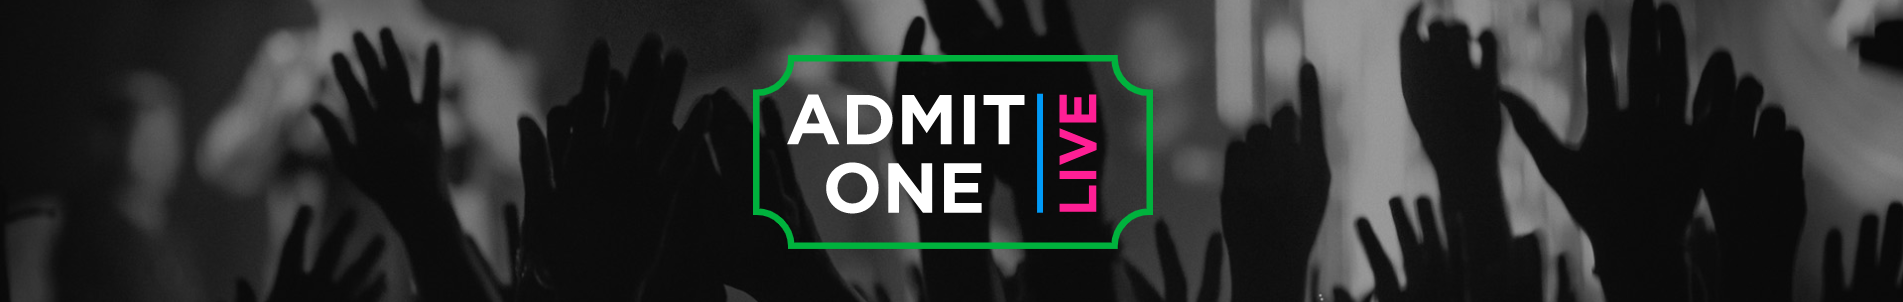 Tickets for MRG Live Presents: Matthew Good - Moving Walls Tour 2020 in Vancouver from Admit One Live